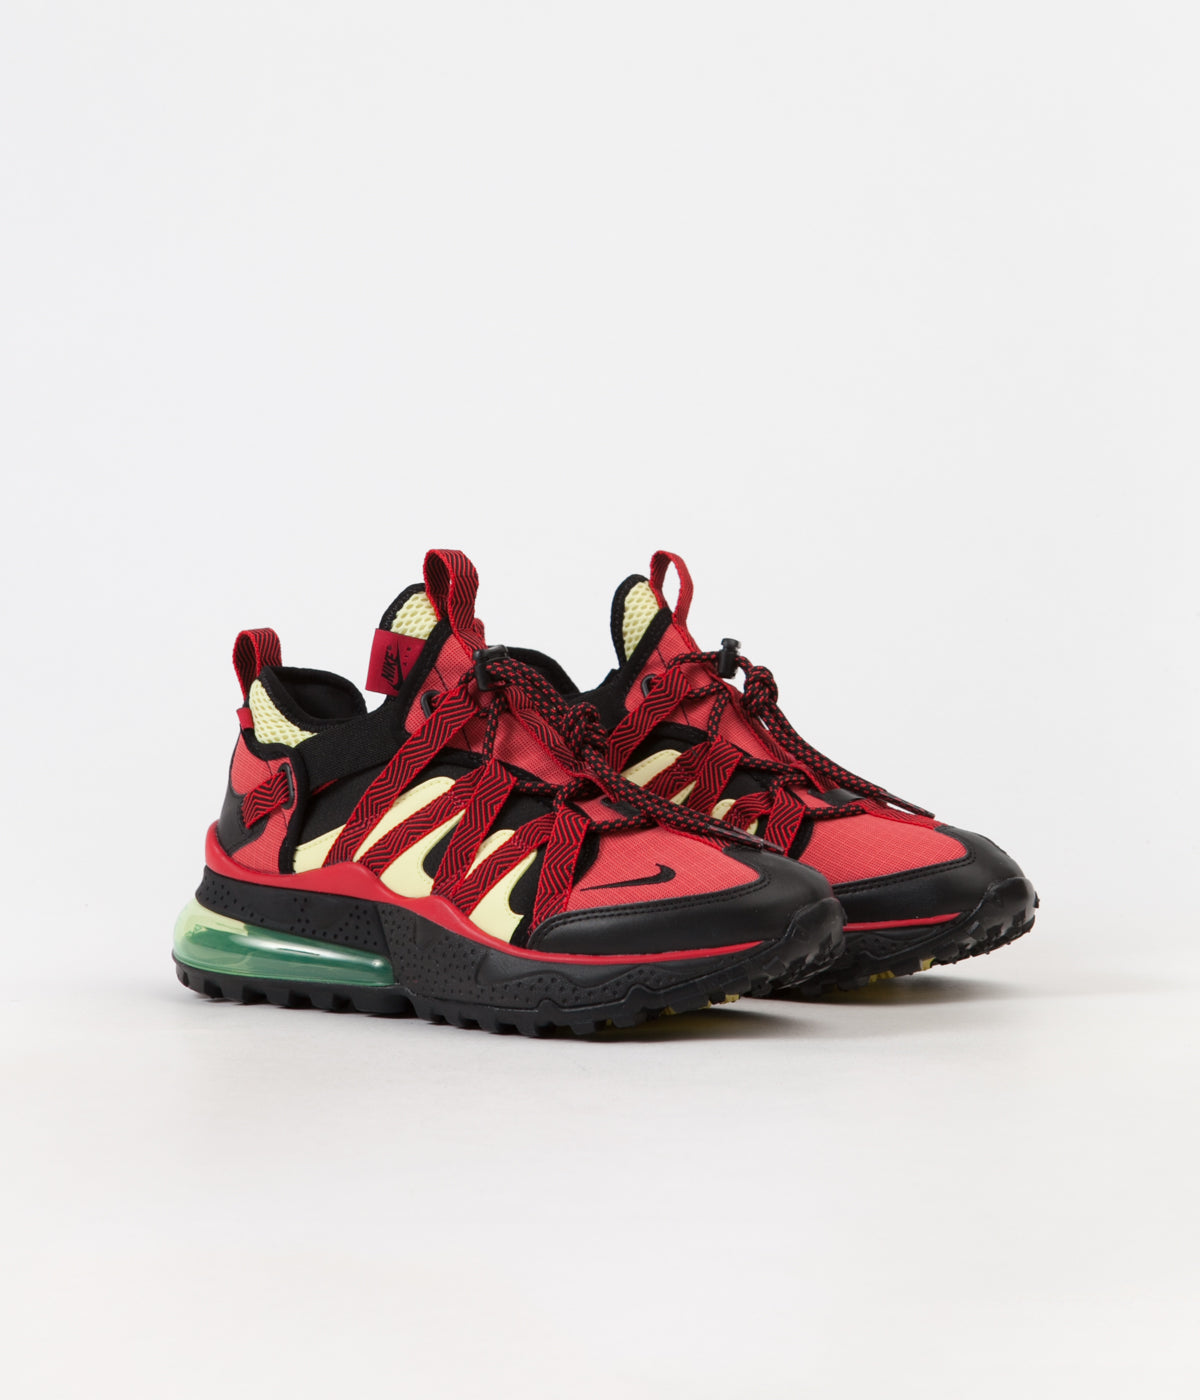 84322c094d ... Nike Air Max 270 Bowfin Shoes - Black / Black - University Red - Light  Zitron ...